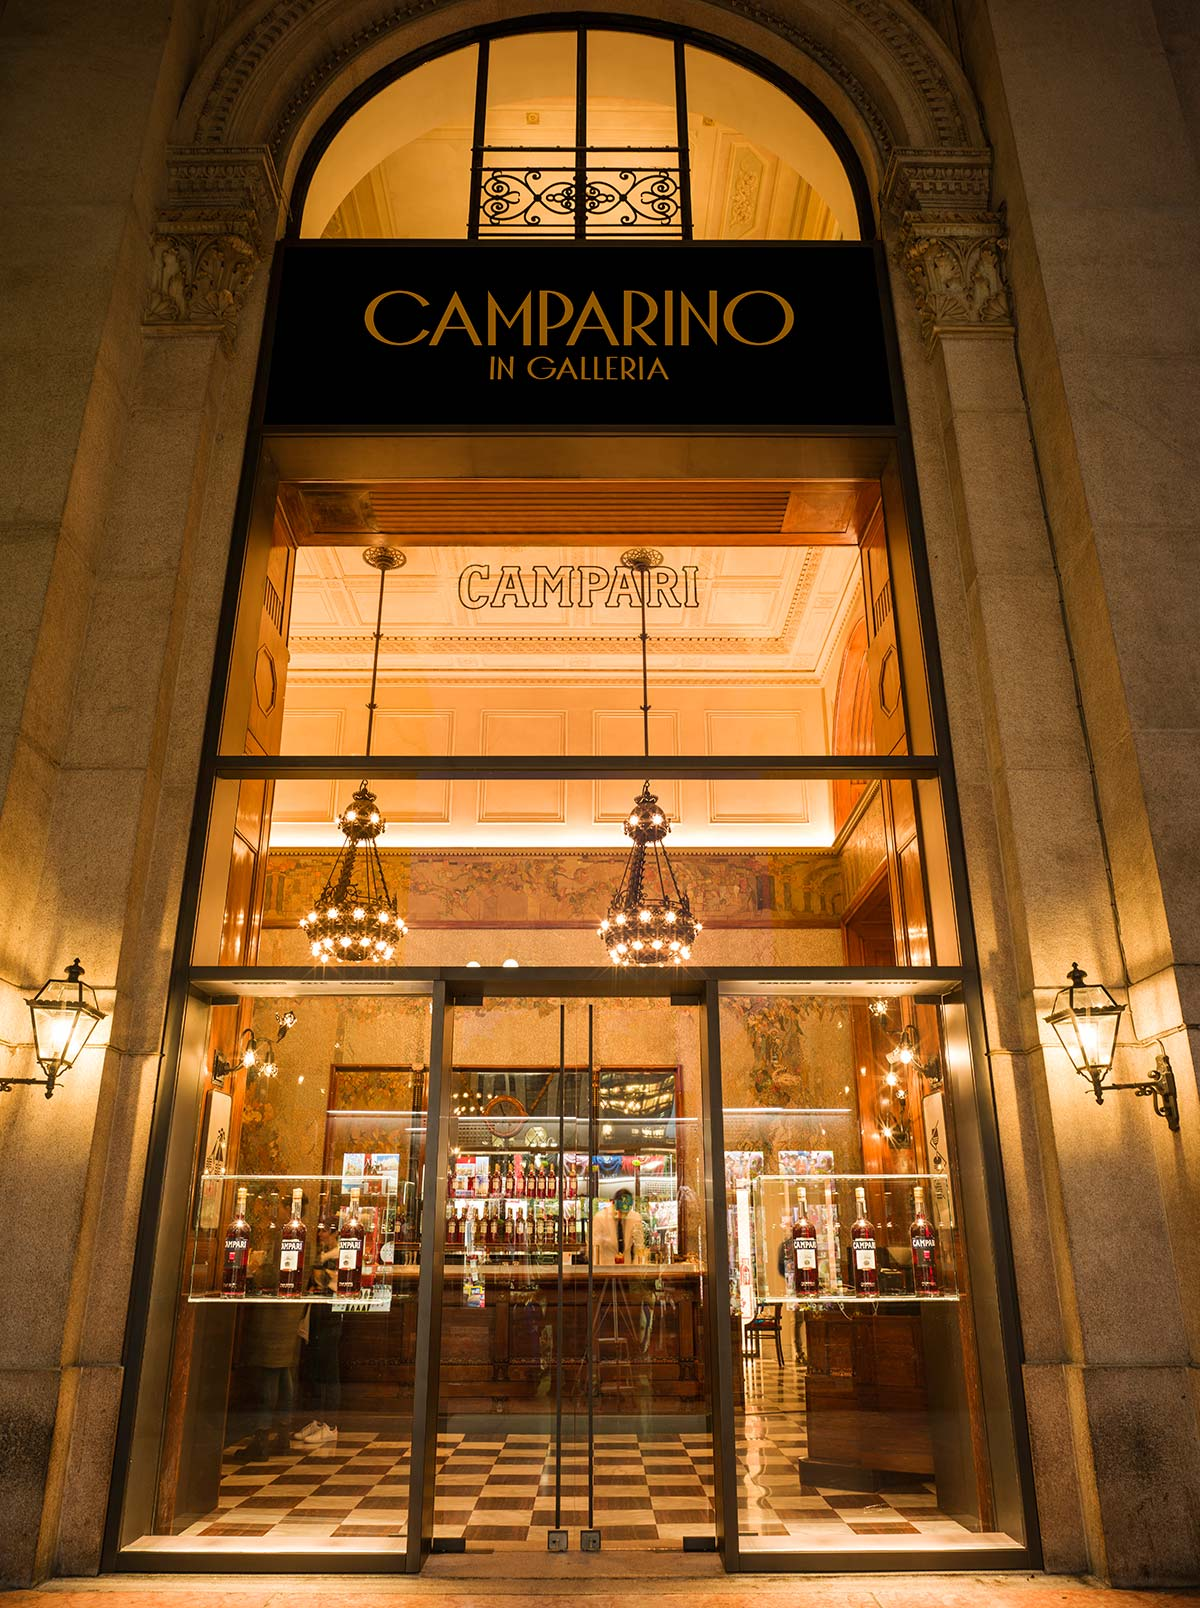 Camparino in Galleria, Milano. Restyling by Lissoni Associati